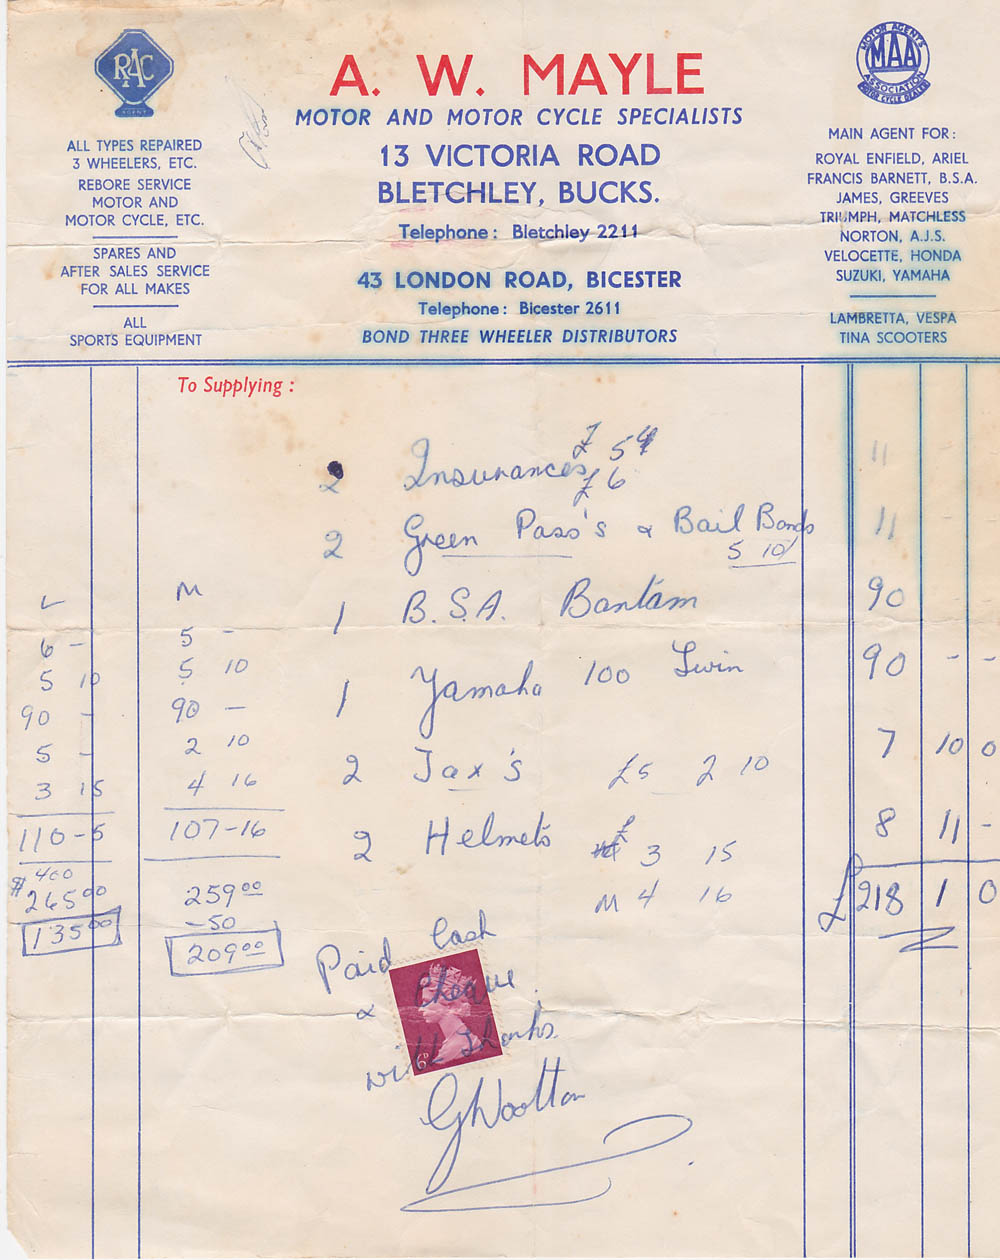 Skip Steele's receipt for the BSA 175